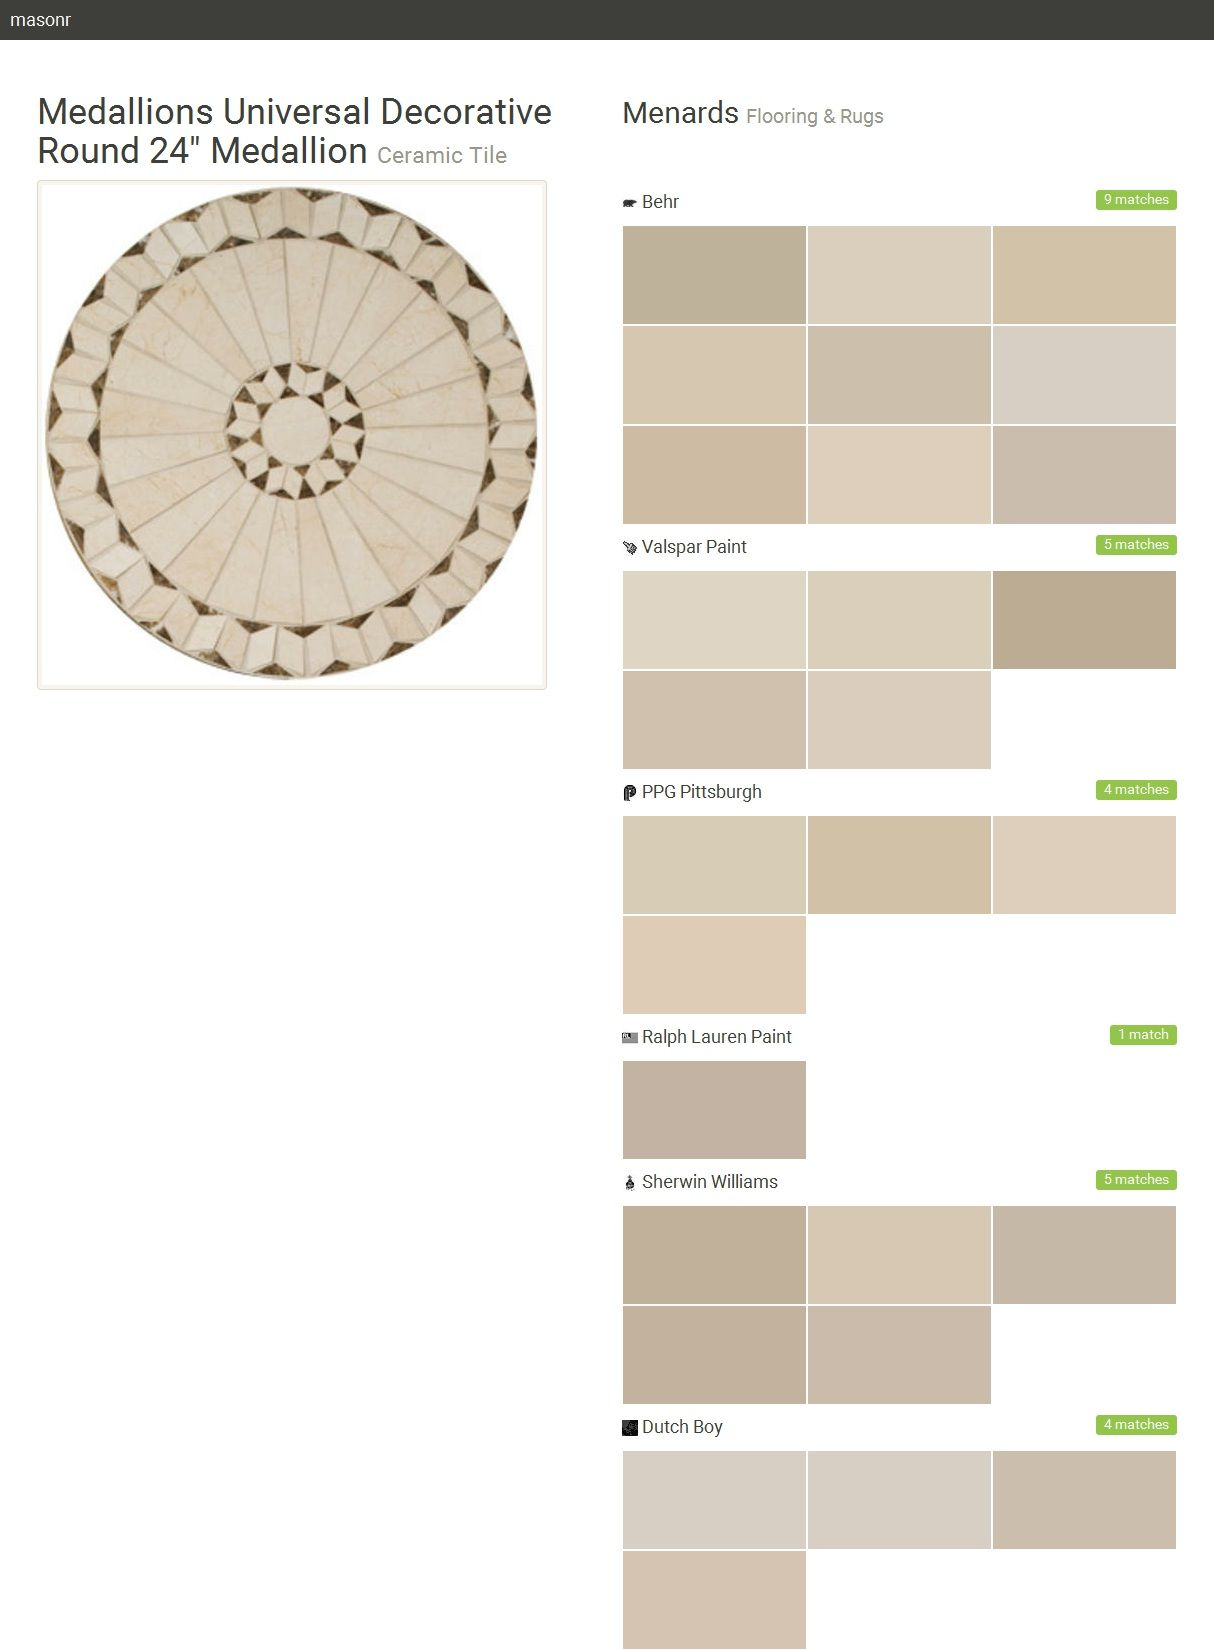 Medallions universal decorative round 24 medallion ceramic tile medallions universal decorative round 24 medallion ceramic tile flooring rugs menards dailygadgetfo Image collections